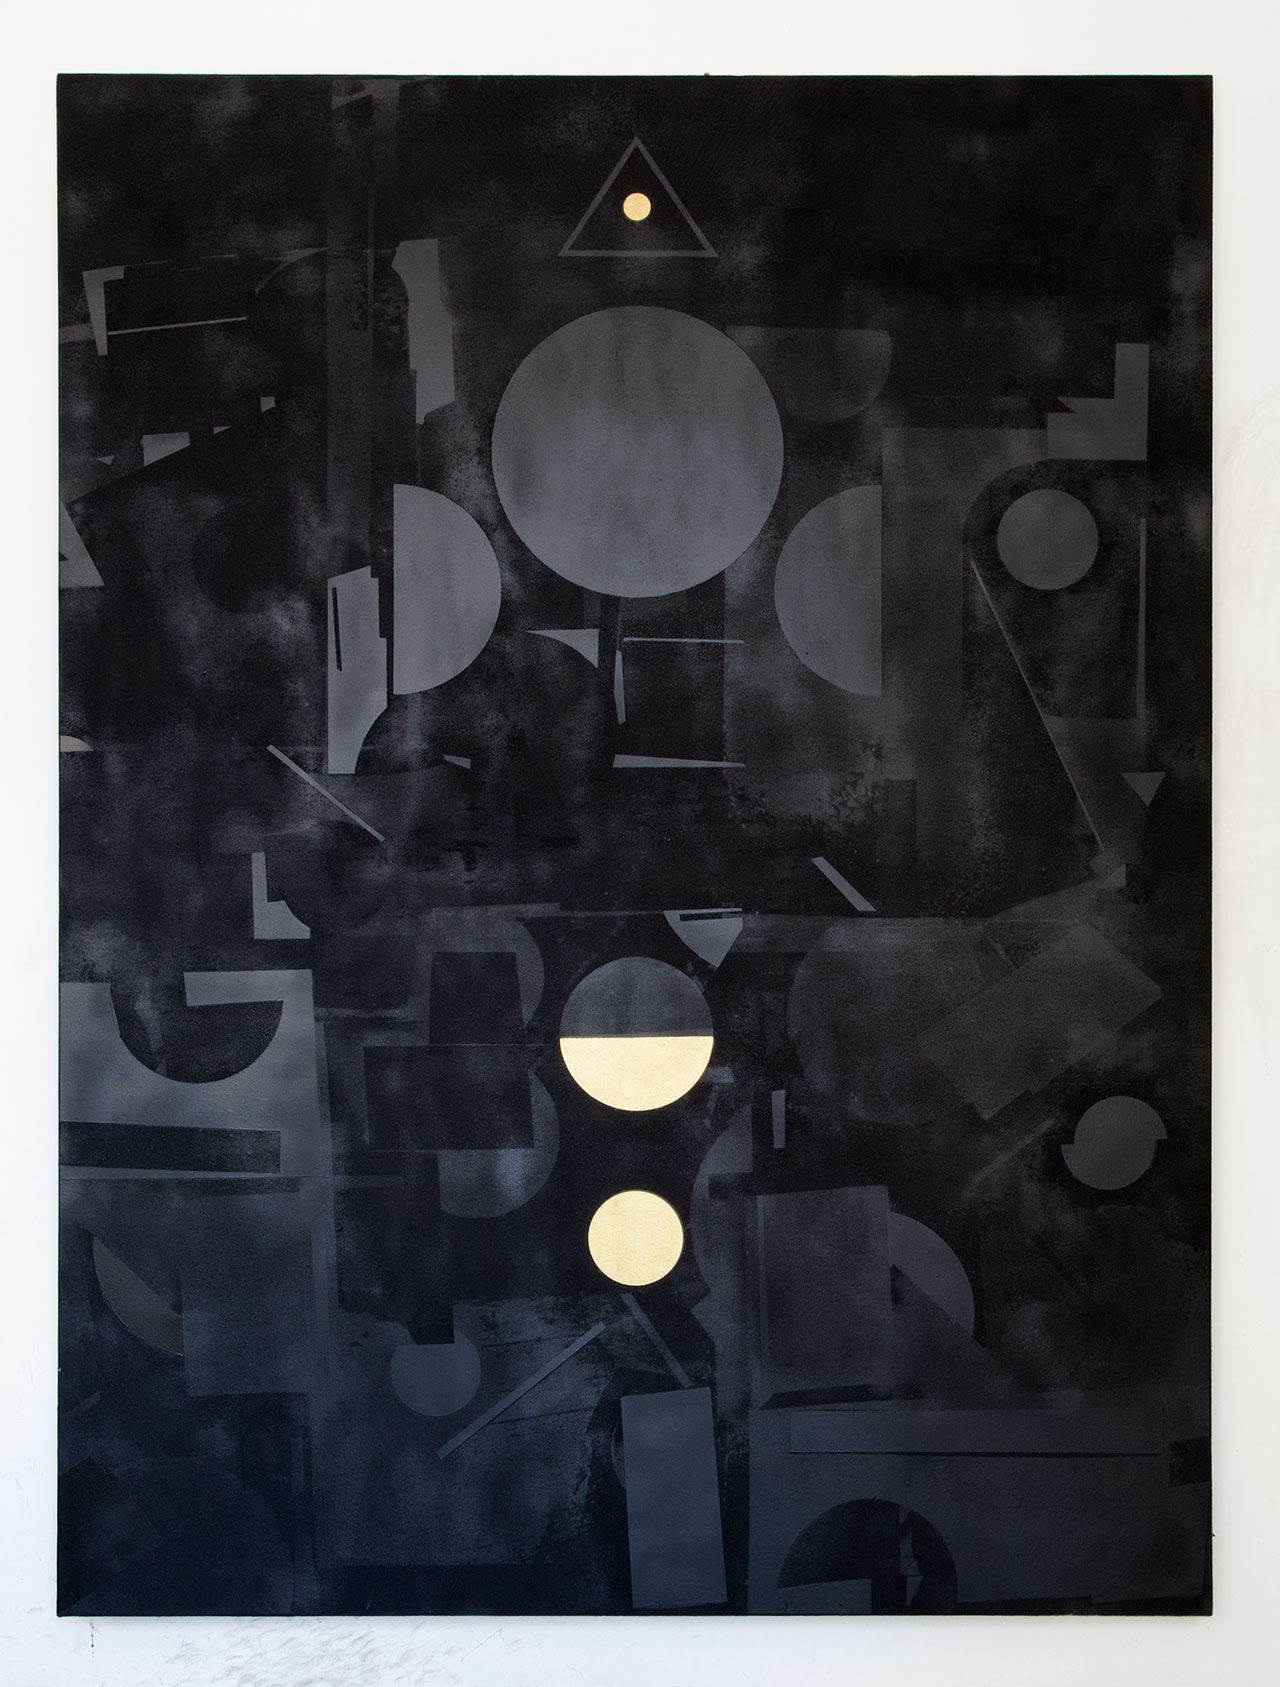 Panos Tsagaris, There is no word or action that does not have its echo in eternity, gold leaf, acrylic paint, spray paint and silkscreen on canvas, 200x150 cm, 2016. Courtesy of the artist and Kalfayan Galleries, Athens-Thessaloniki.